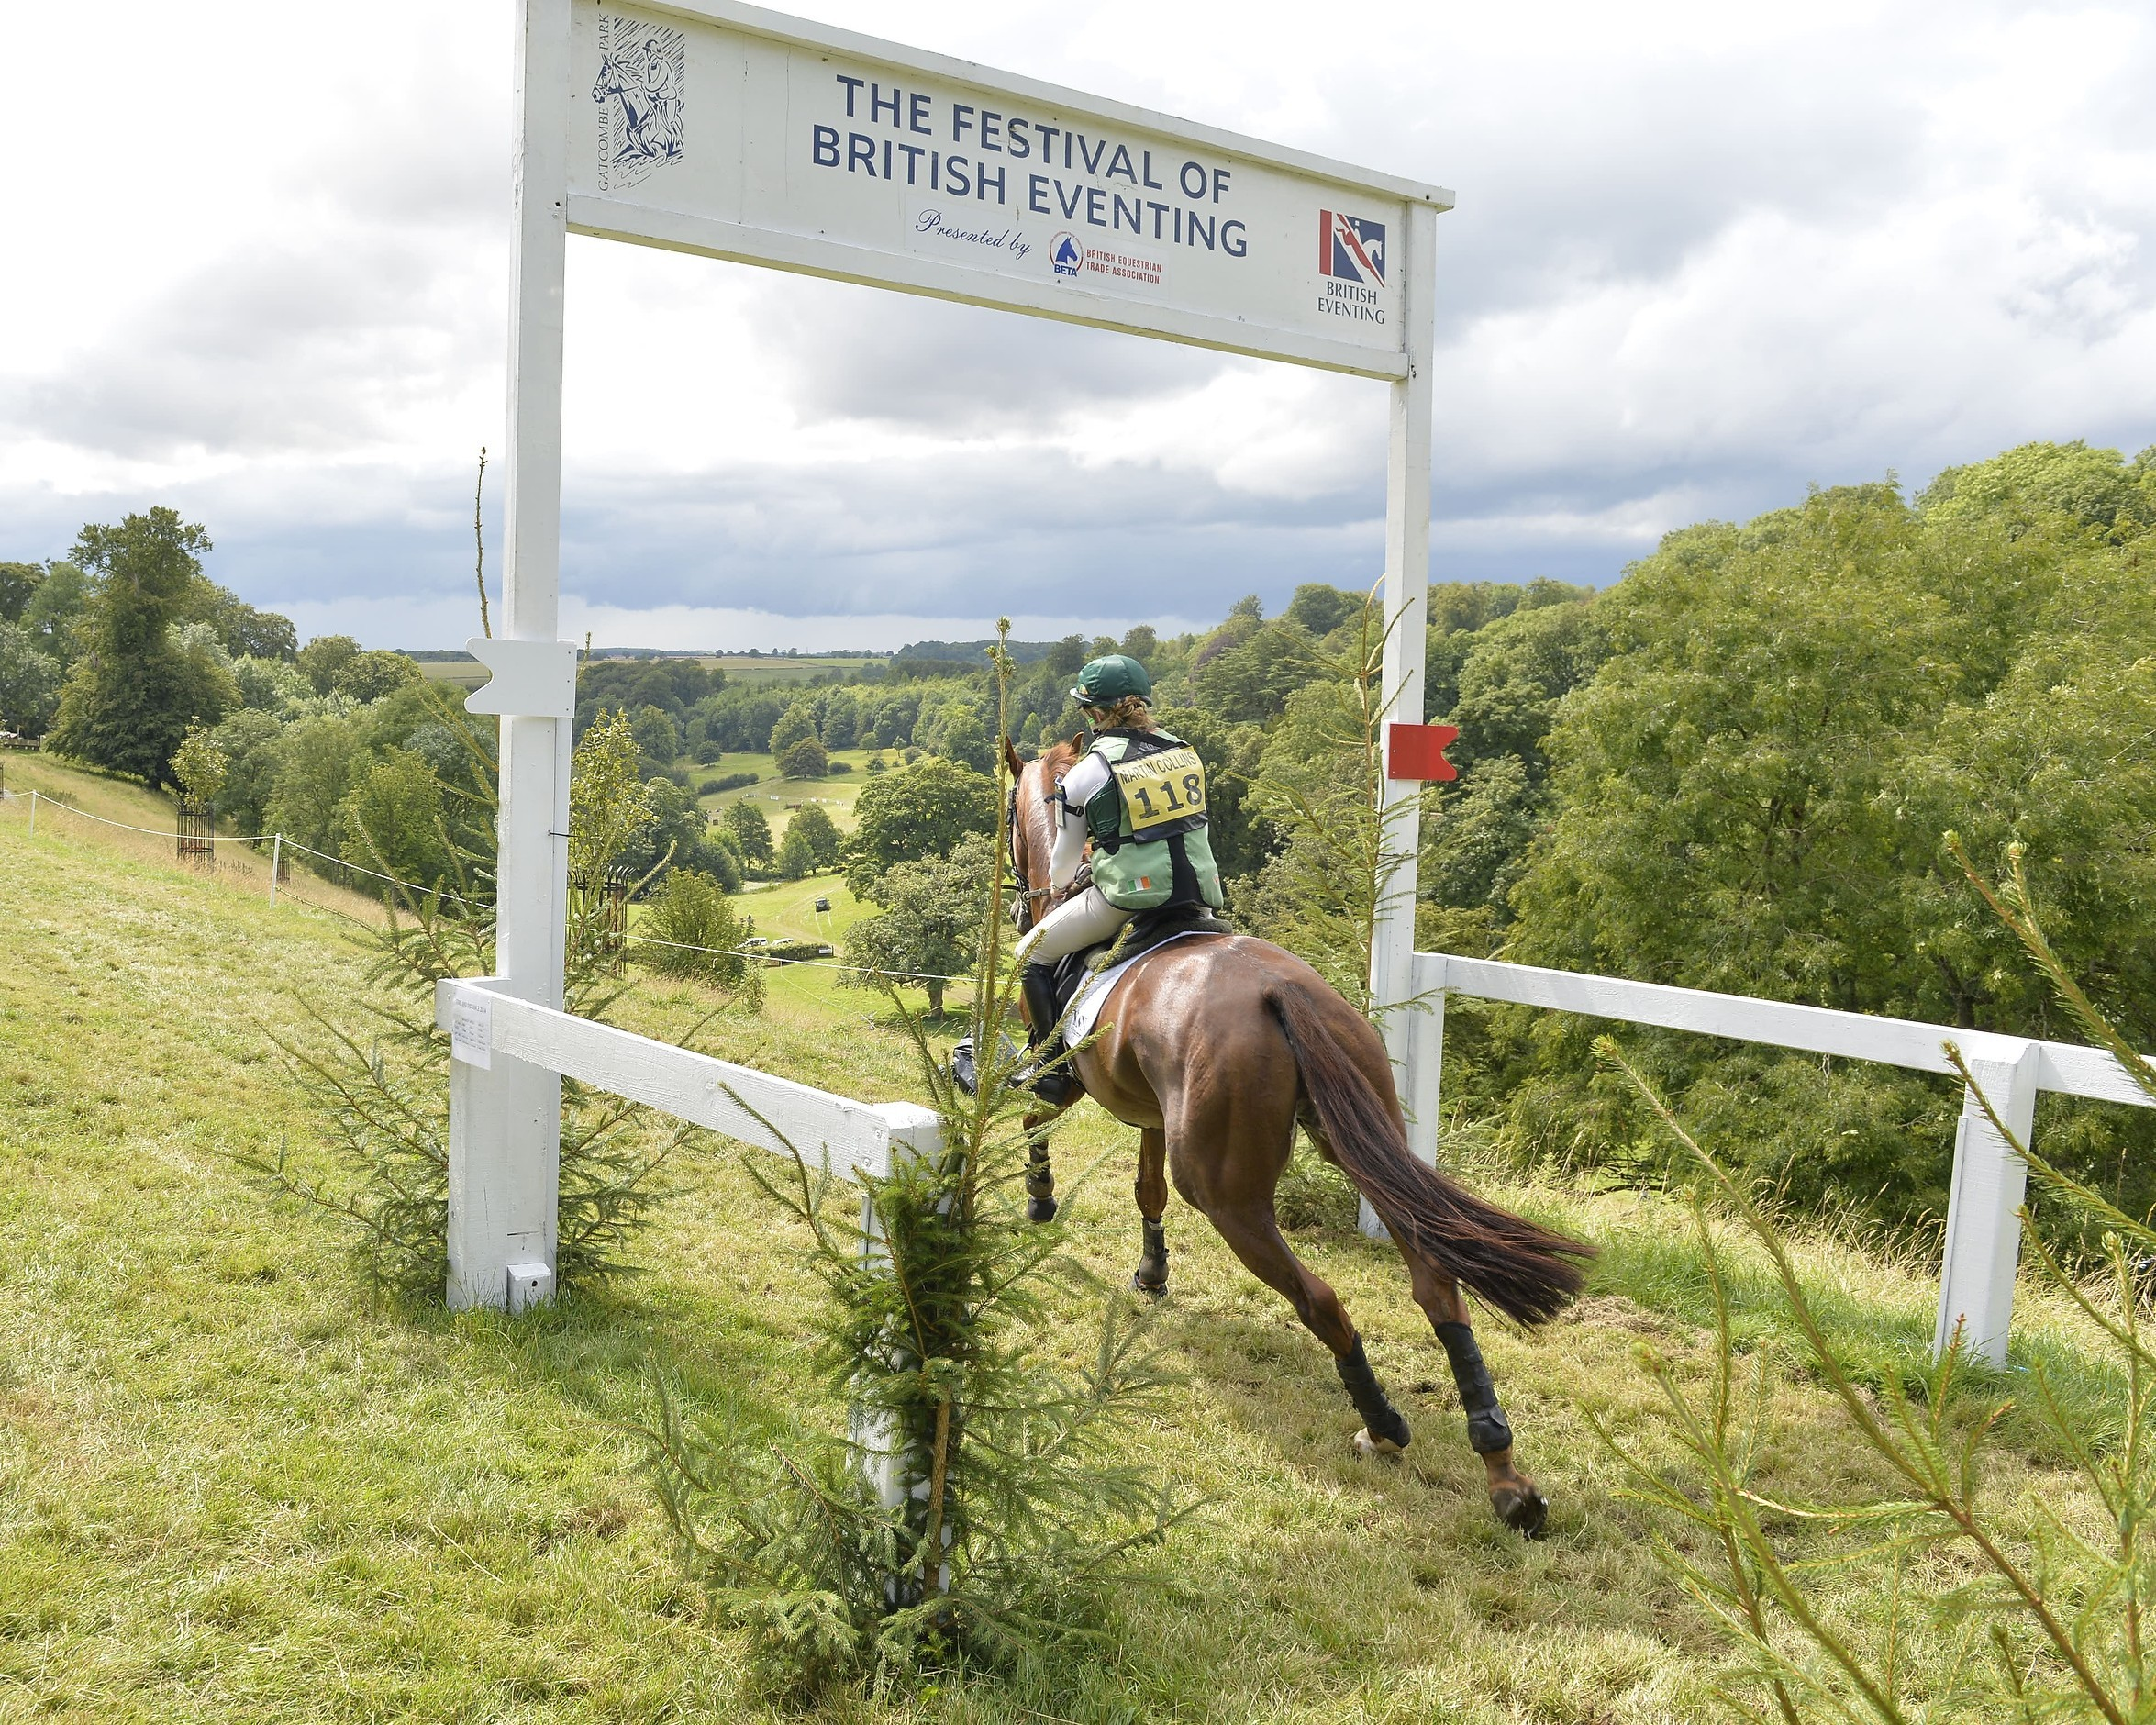 Image for Leg 4 heads to The Festival of British Eventing at Gatcombe Park